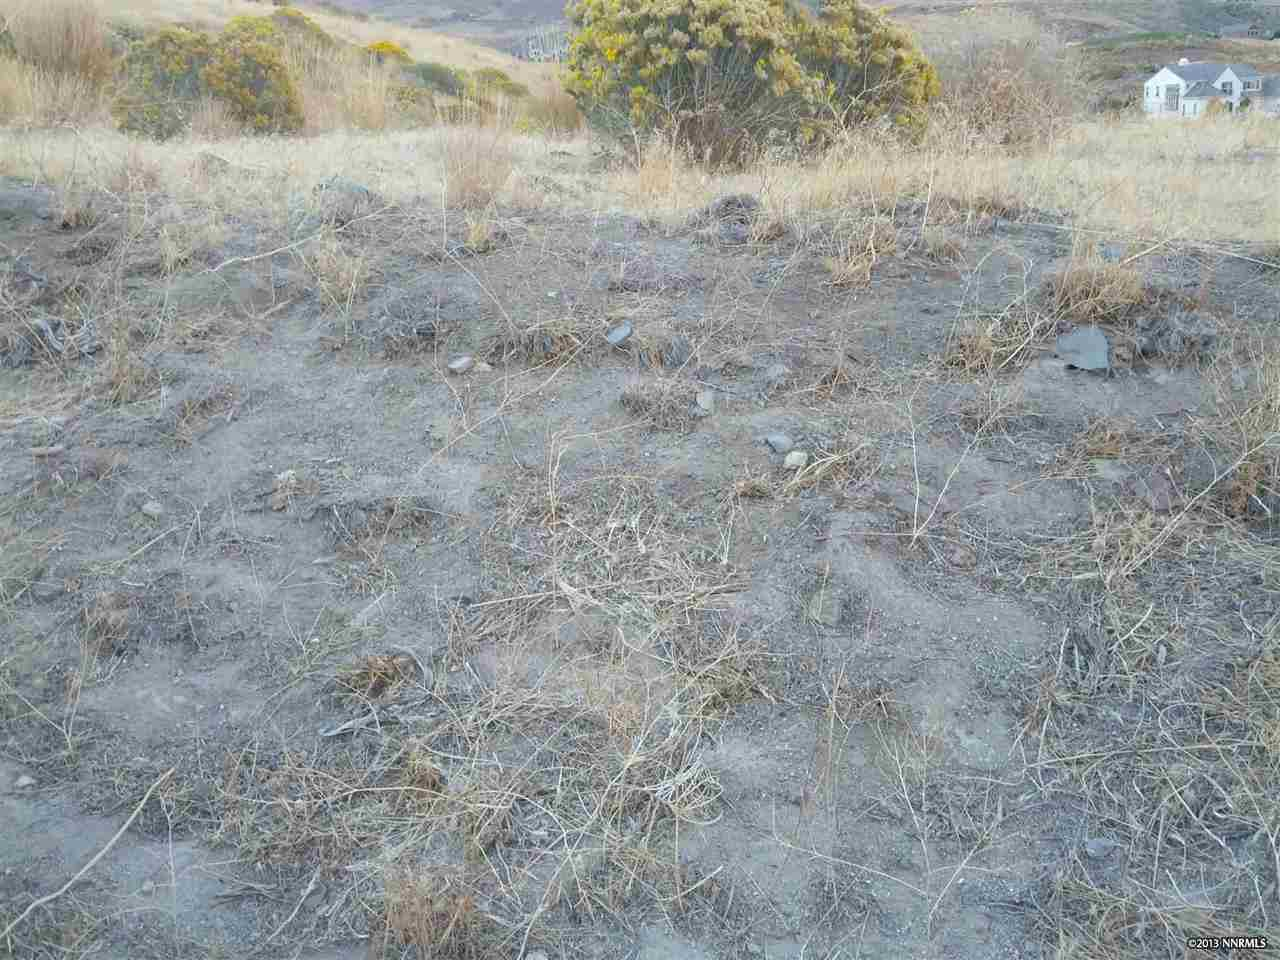 000 ISPASTER RD #41 Property Photo - Sparks, NV real estate listing